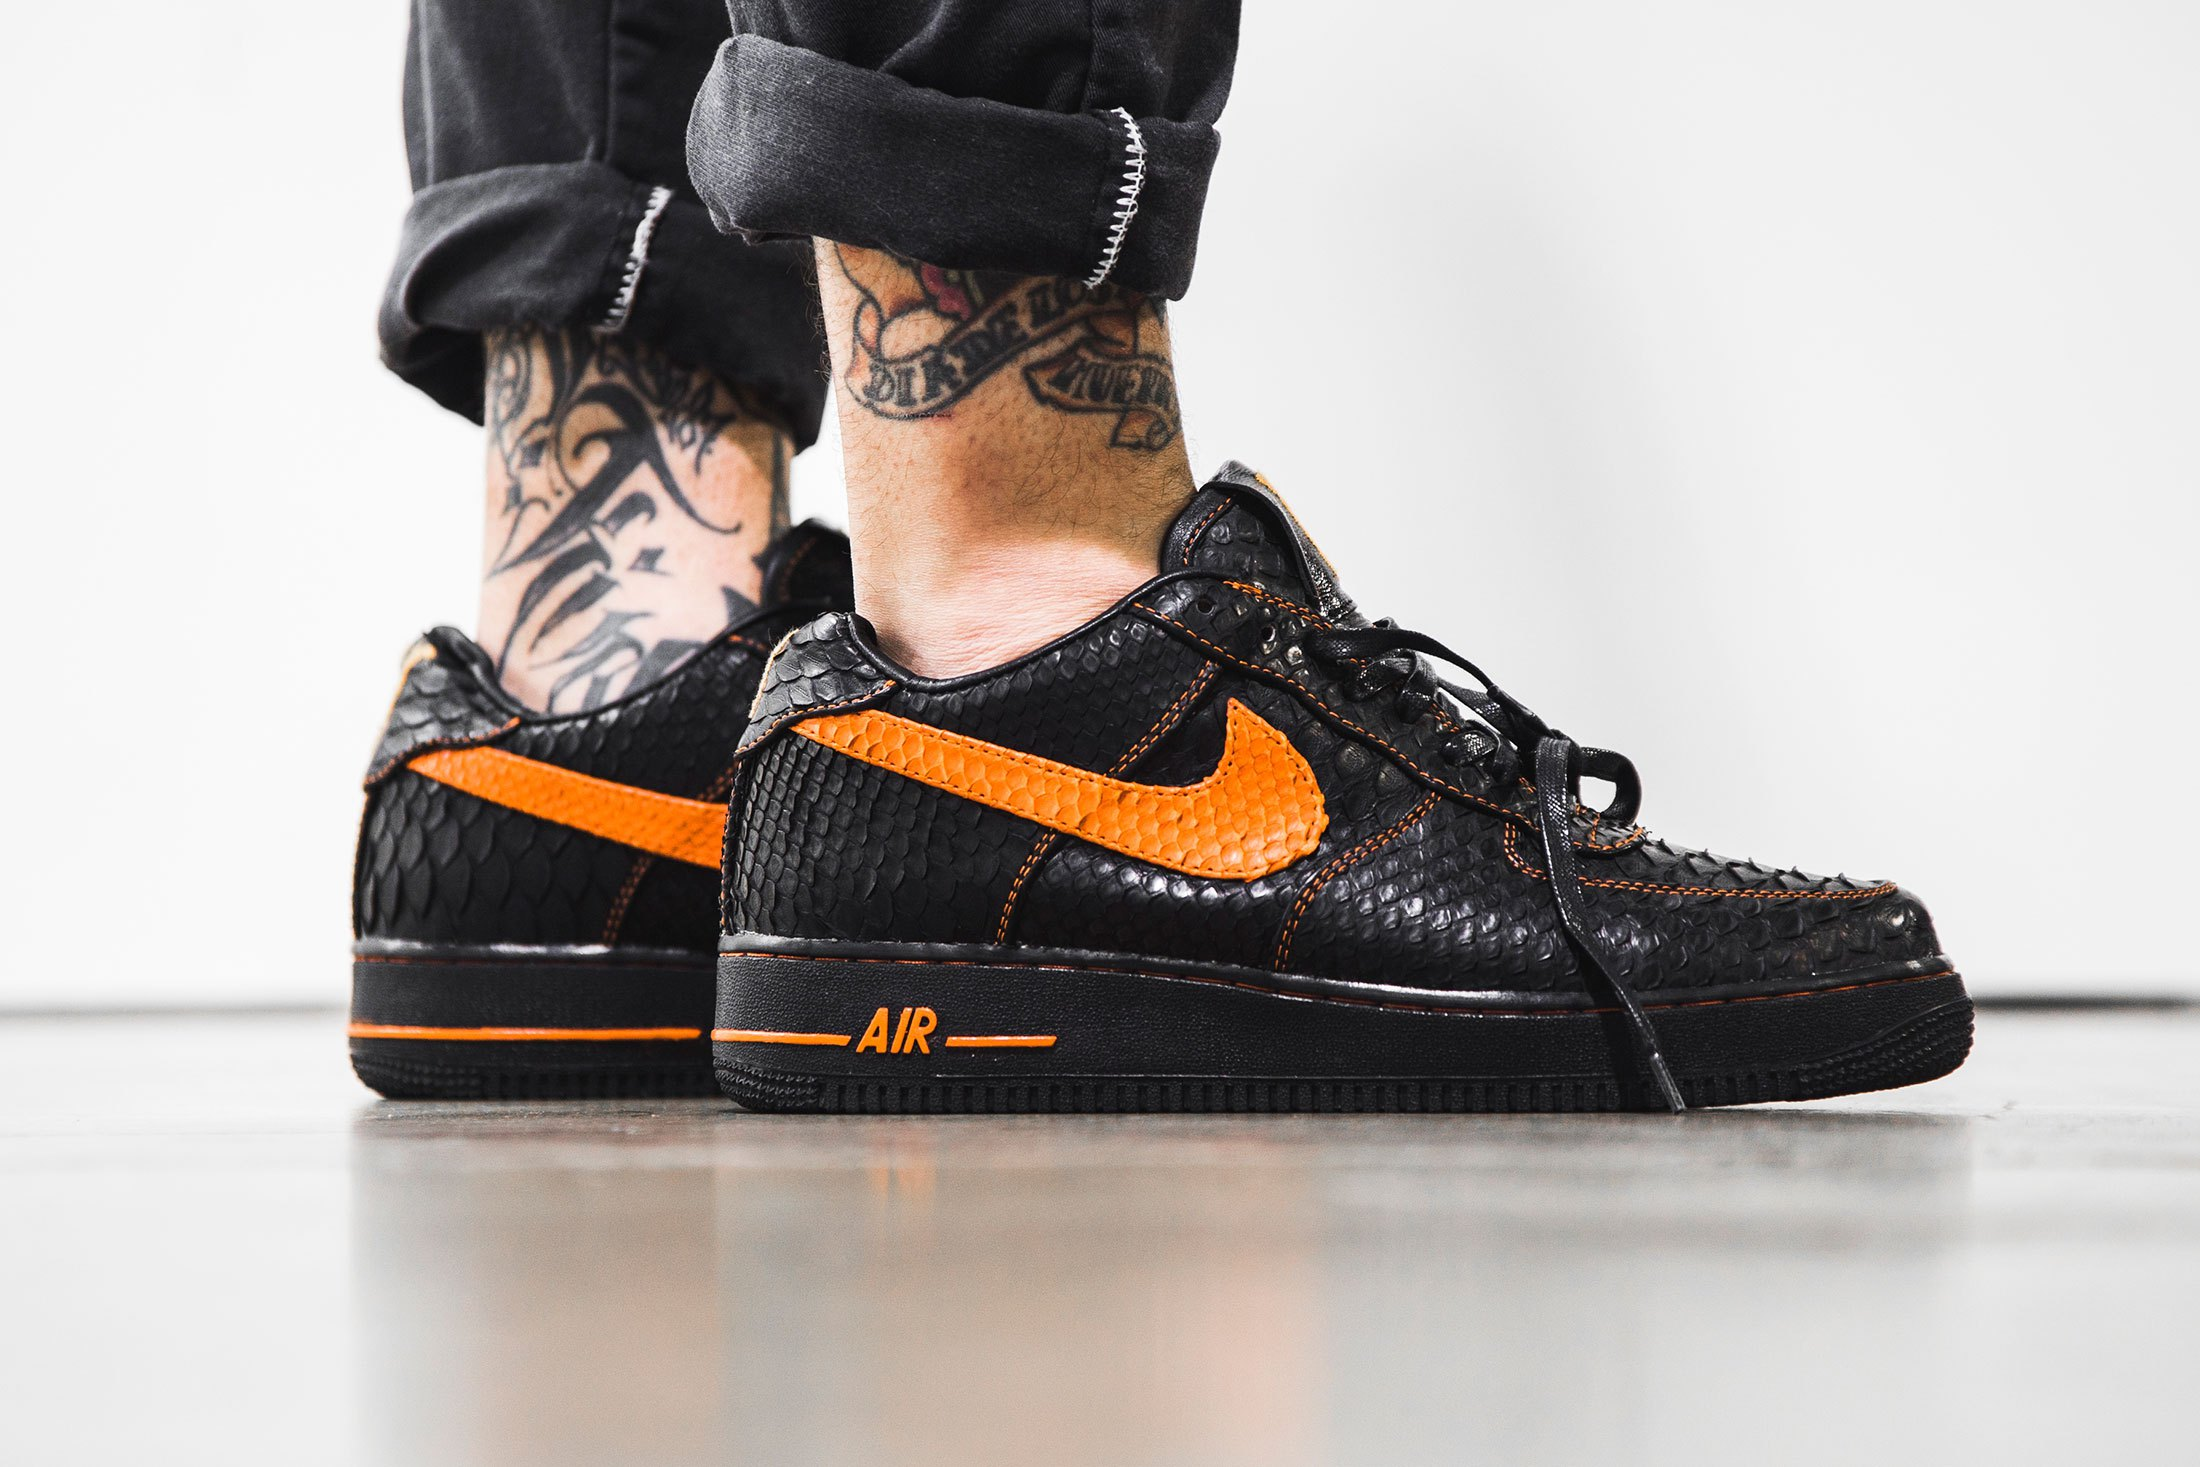 the-shoe-surgeon-vlone-nike-air-force-1-1